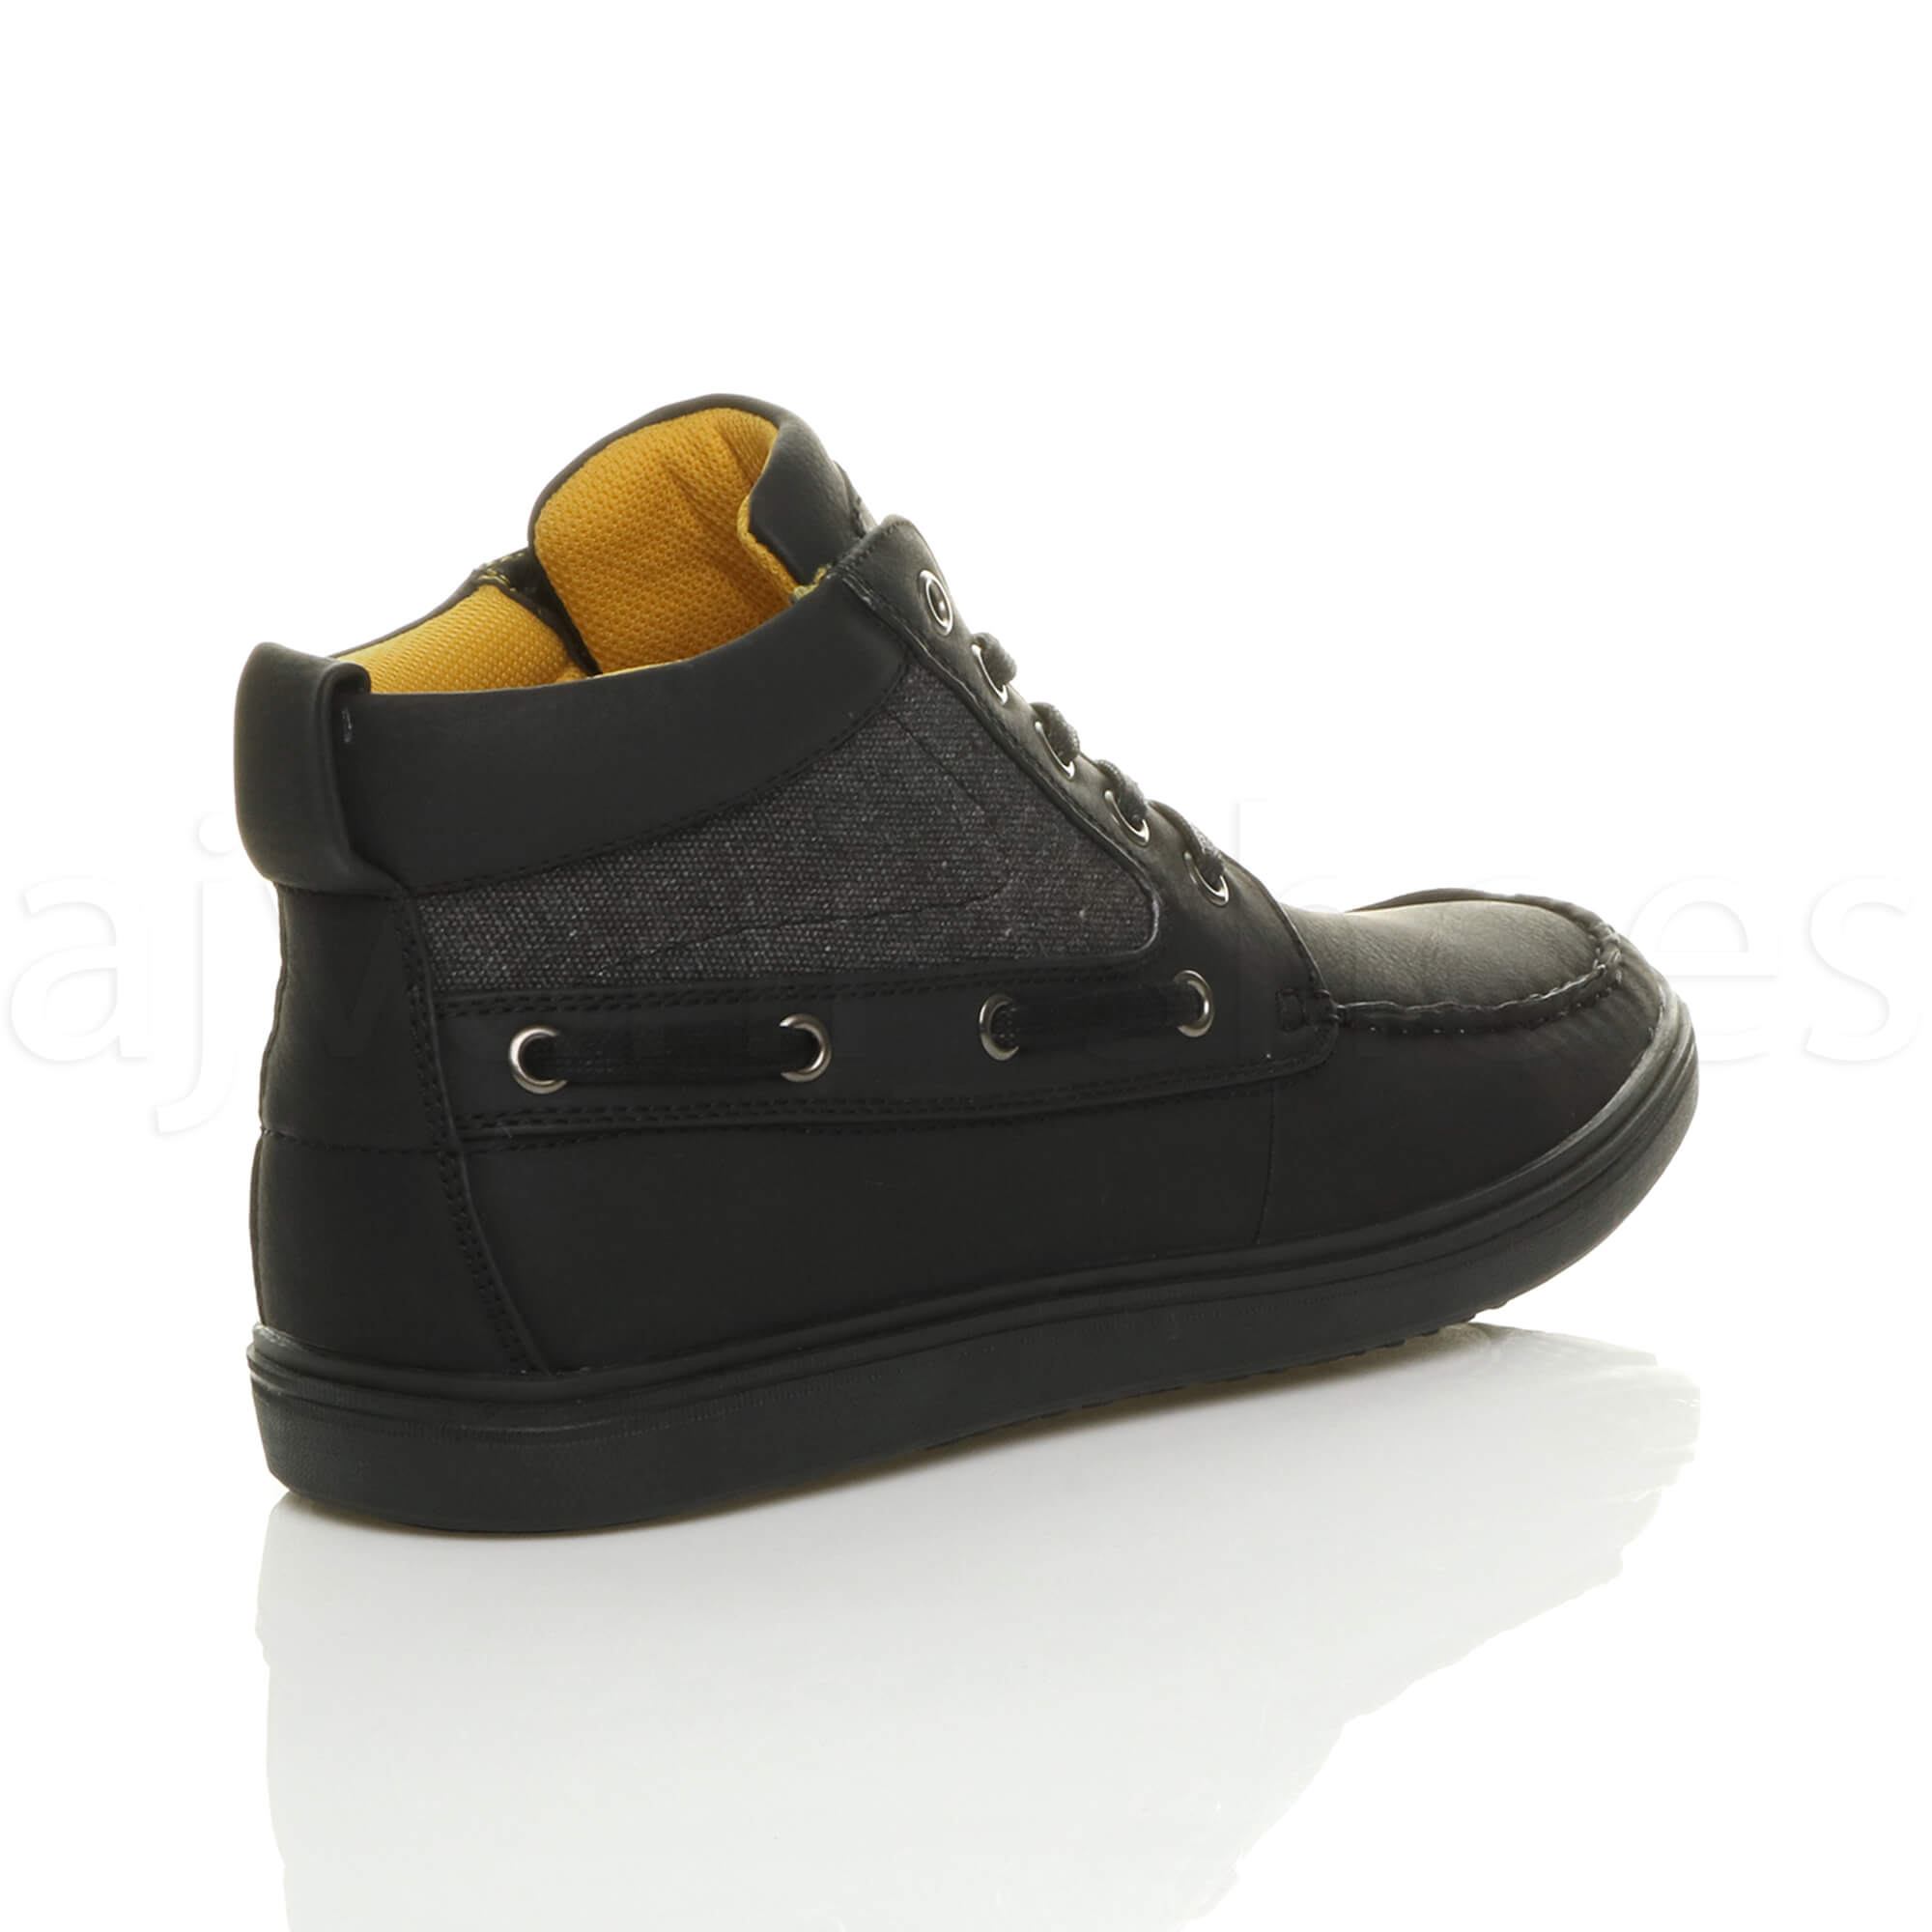 MENS-FLAT-LACE-UP-CASUAL-BOAT-CONTRAST-HI-TOP-TRAINERS-ANKLE-BOOTS-PUMPS-SIZE thumbnail 5